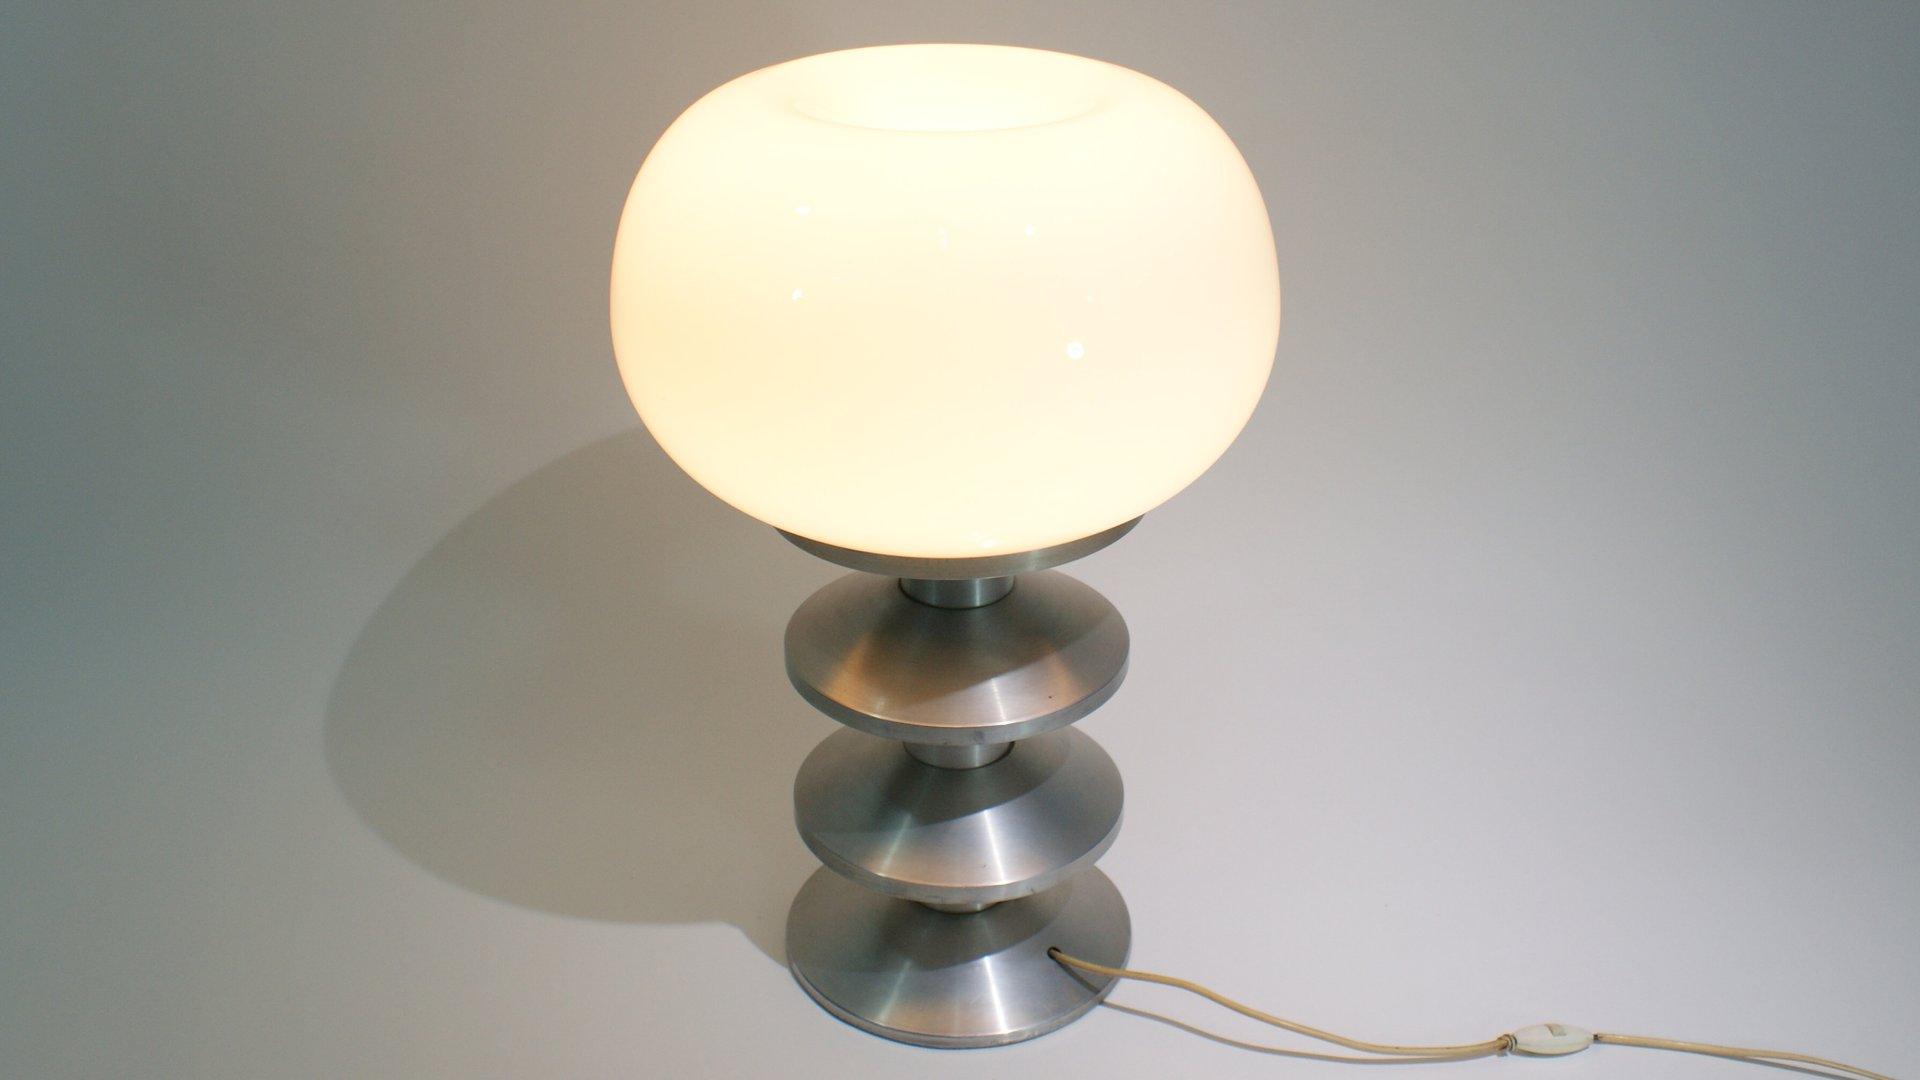 lighting r by listings a for lamp rstrand furniture of lamps alberius large pair table olle